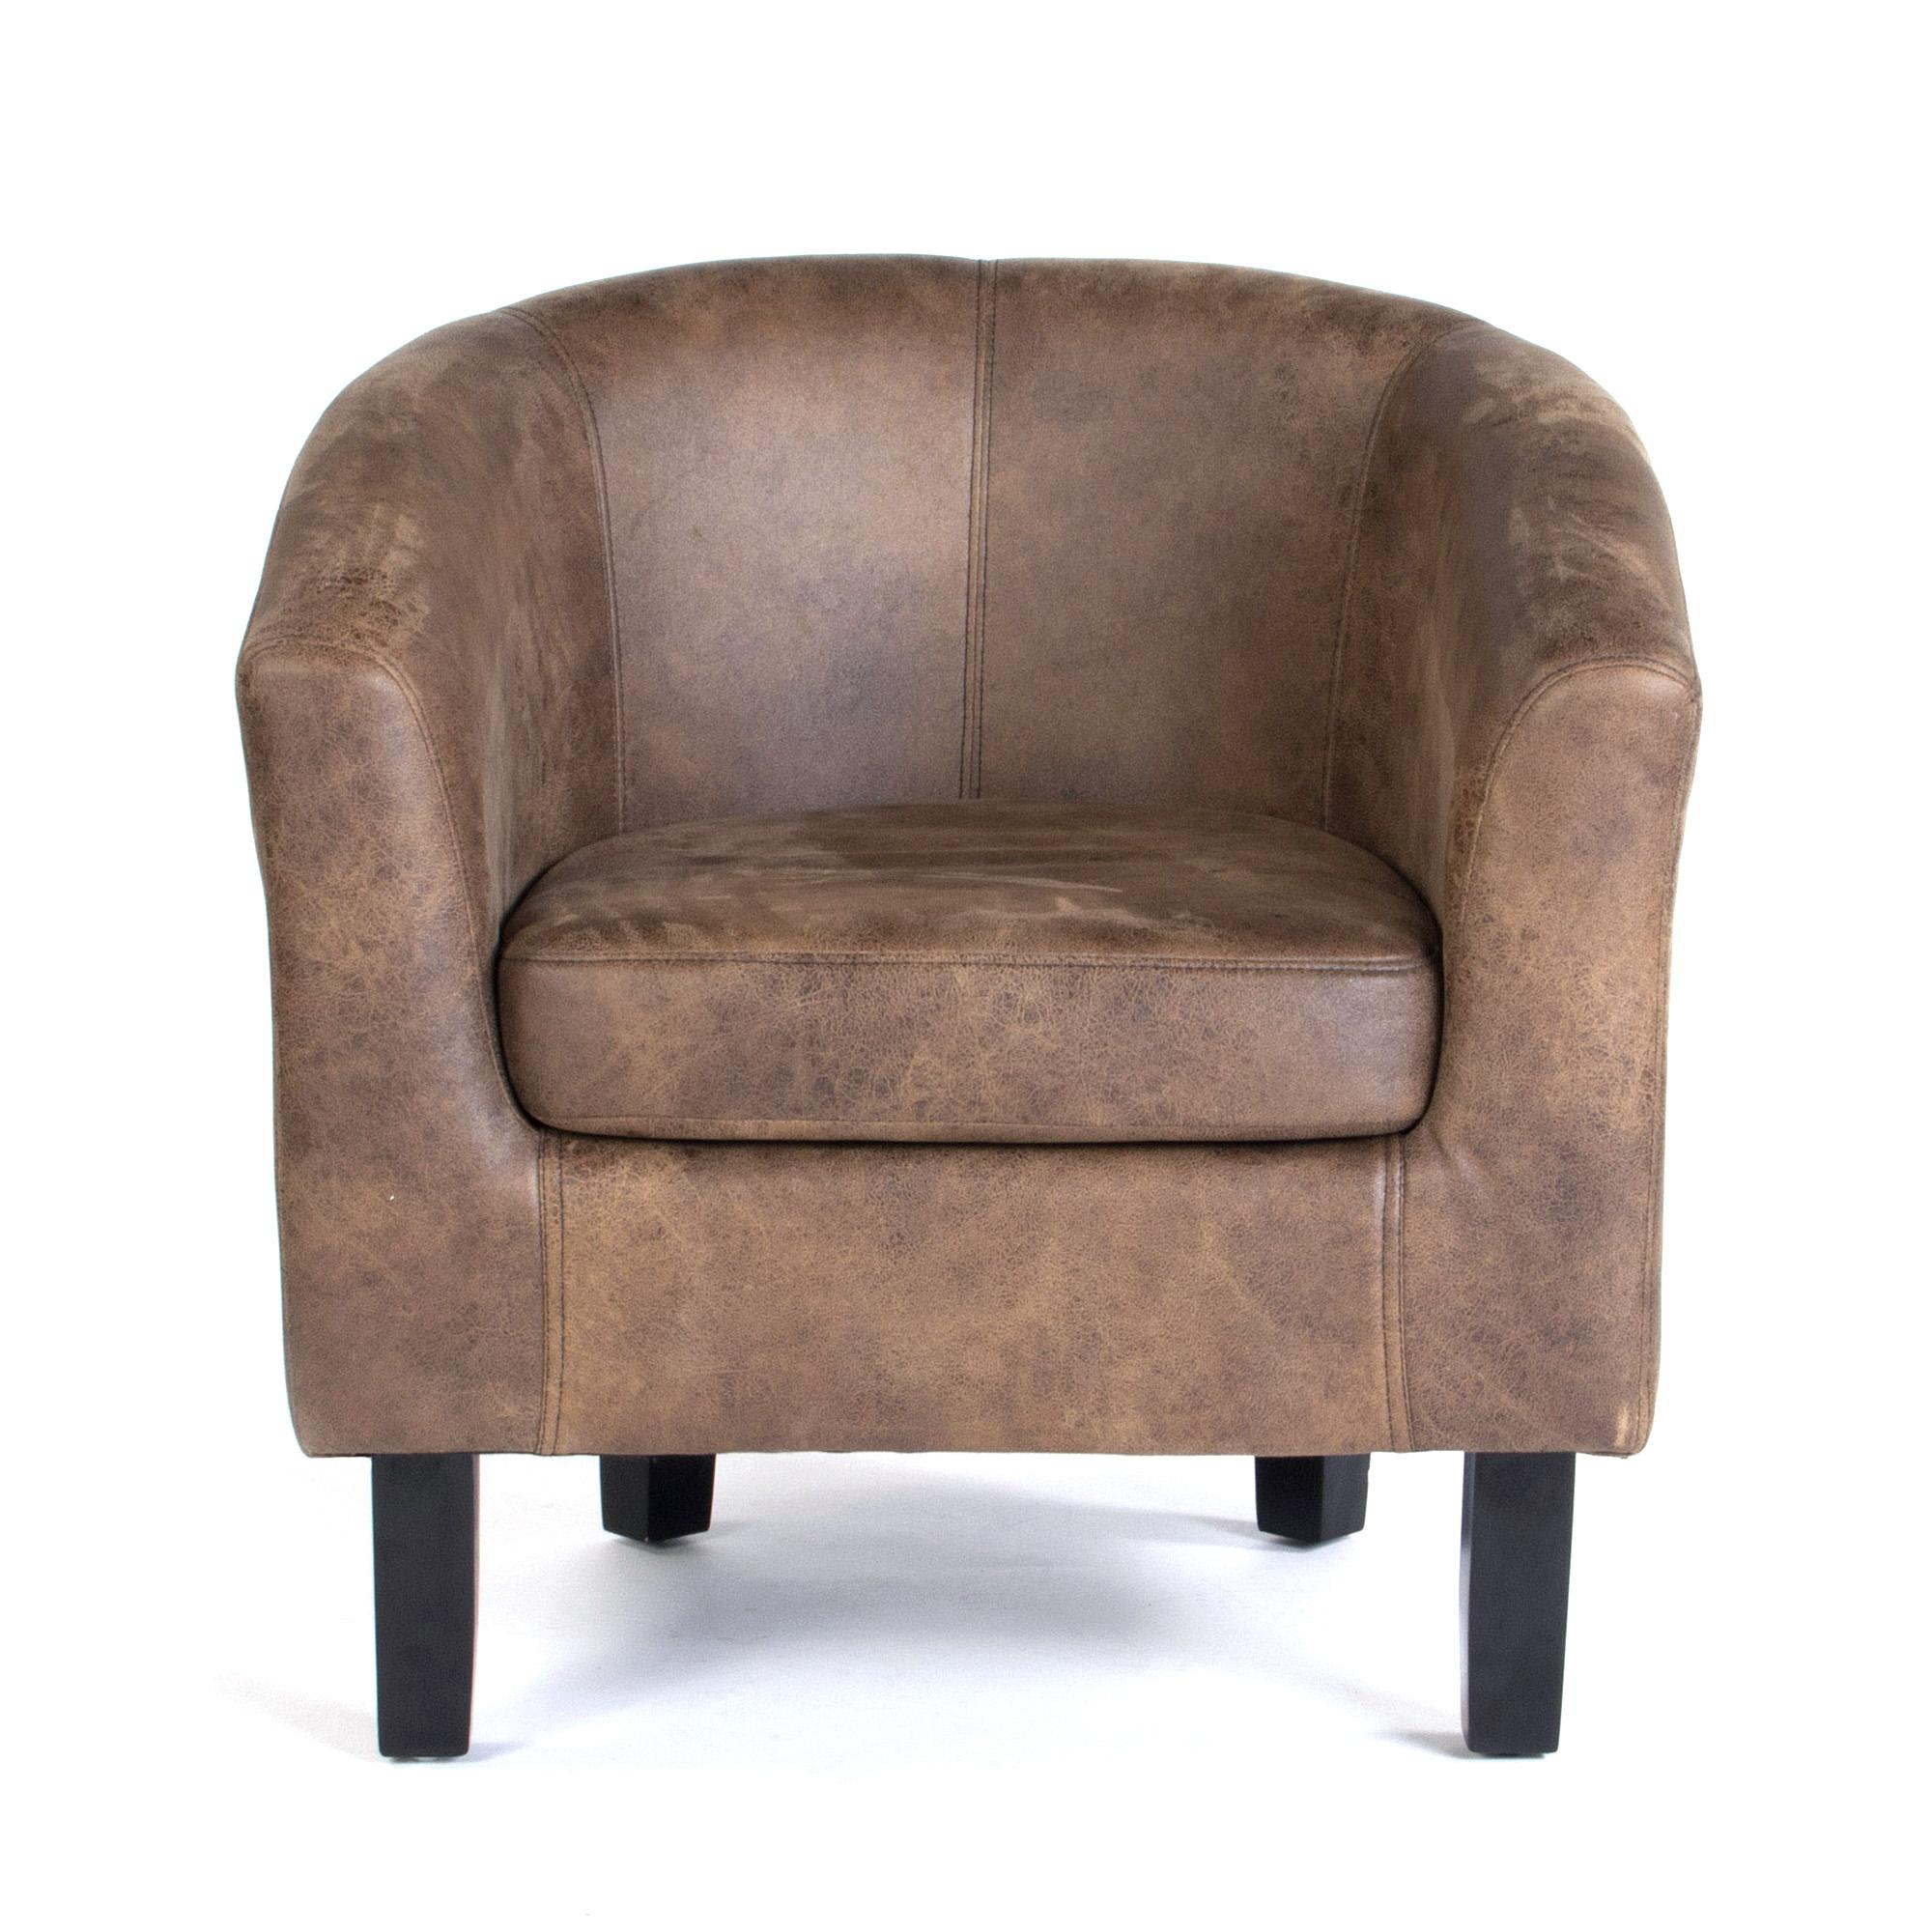 Faux Leather Tub Chair - Tan | Dunelm